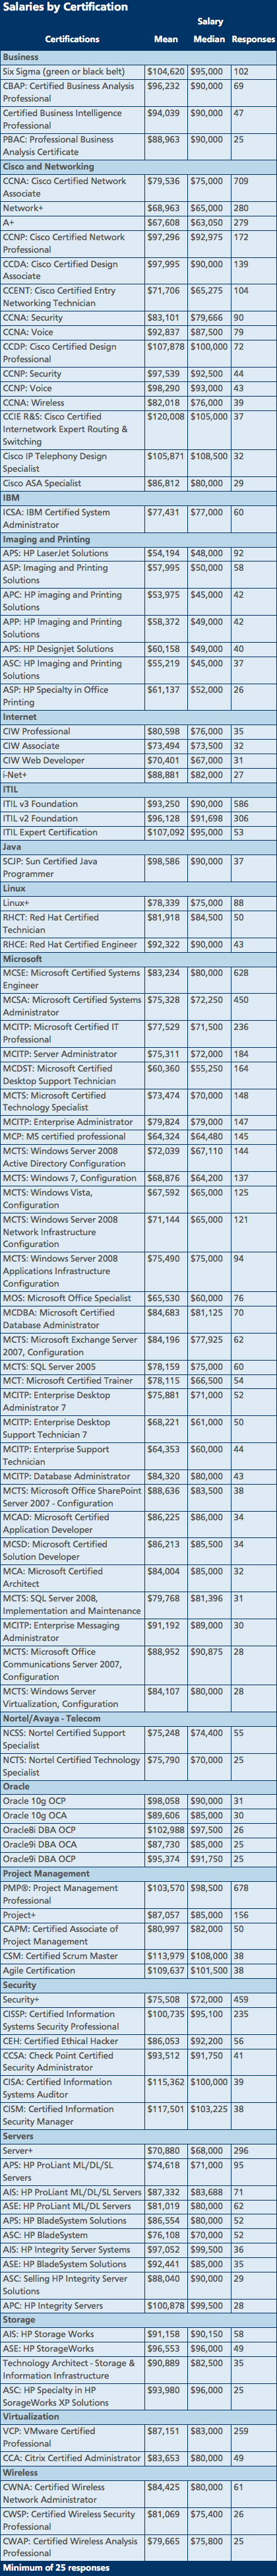 Salaries by Certification